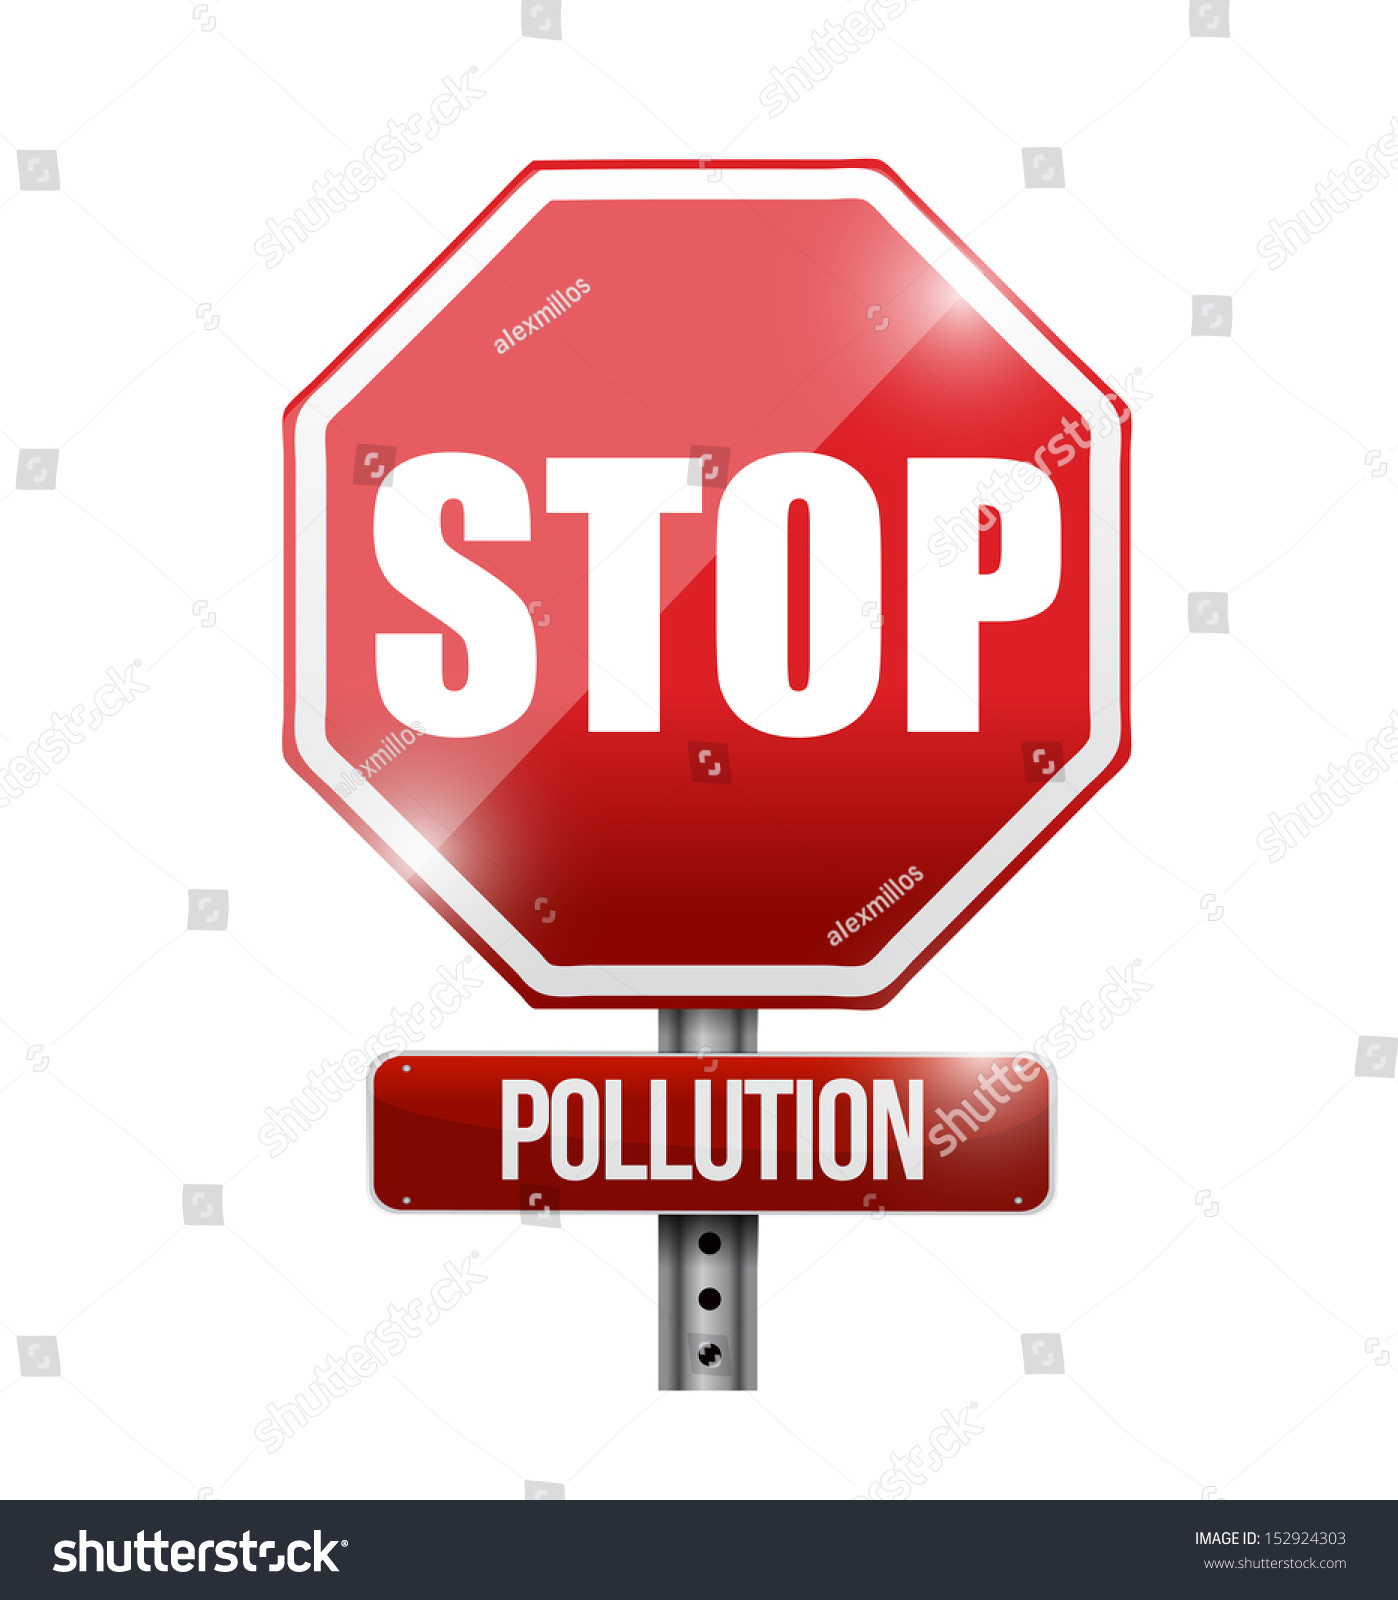 Stop Pollution Road Sign Illustration Design Over A White. Milagro Para El Embarazo Vaginal Pain Causes. Capital Merchant Solutions Inc. Do The Royals Play Today Utah Estate Planning. How To Get Small Business Loans With Bad Credit. India Software Development 4 Savings Account. V A Hospital Lexington Ky Toxic Tort Lawyer. Loan Refinancing Calculator Cairns Car Hire. Ipad Inventory Management Best Used Auto Loan